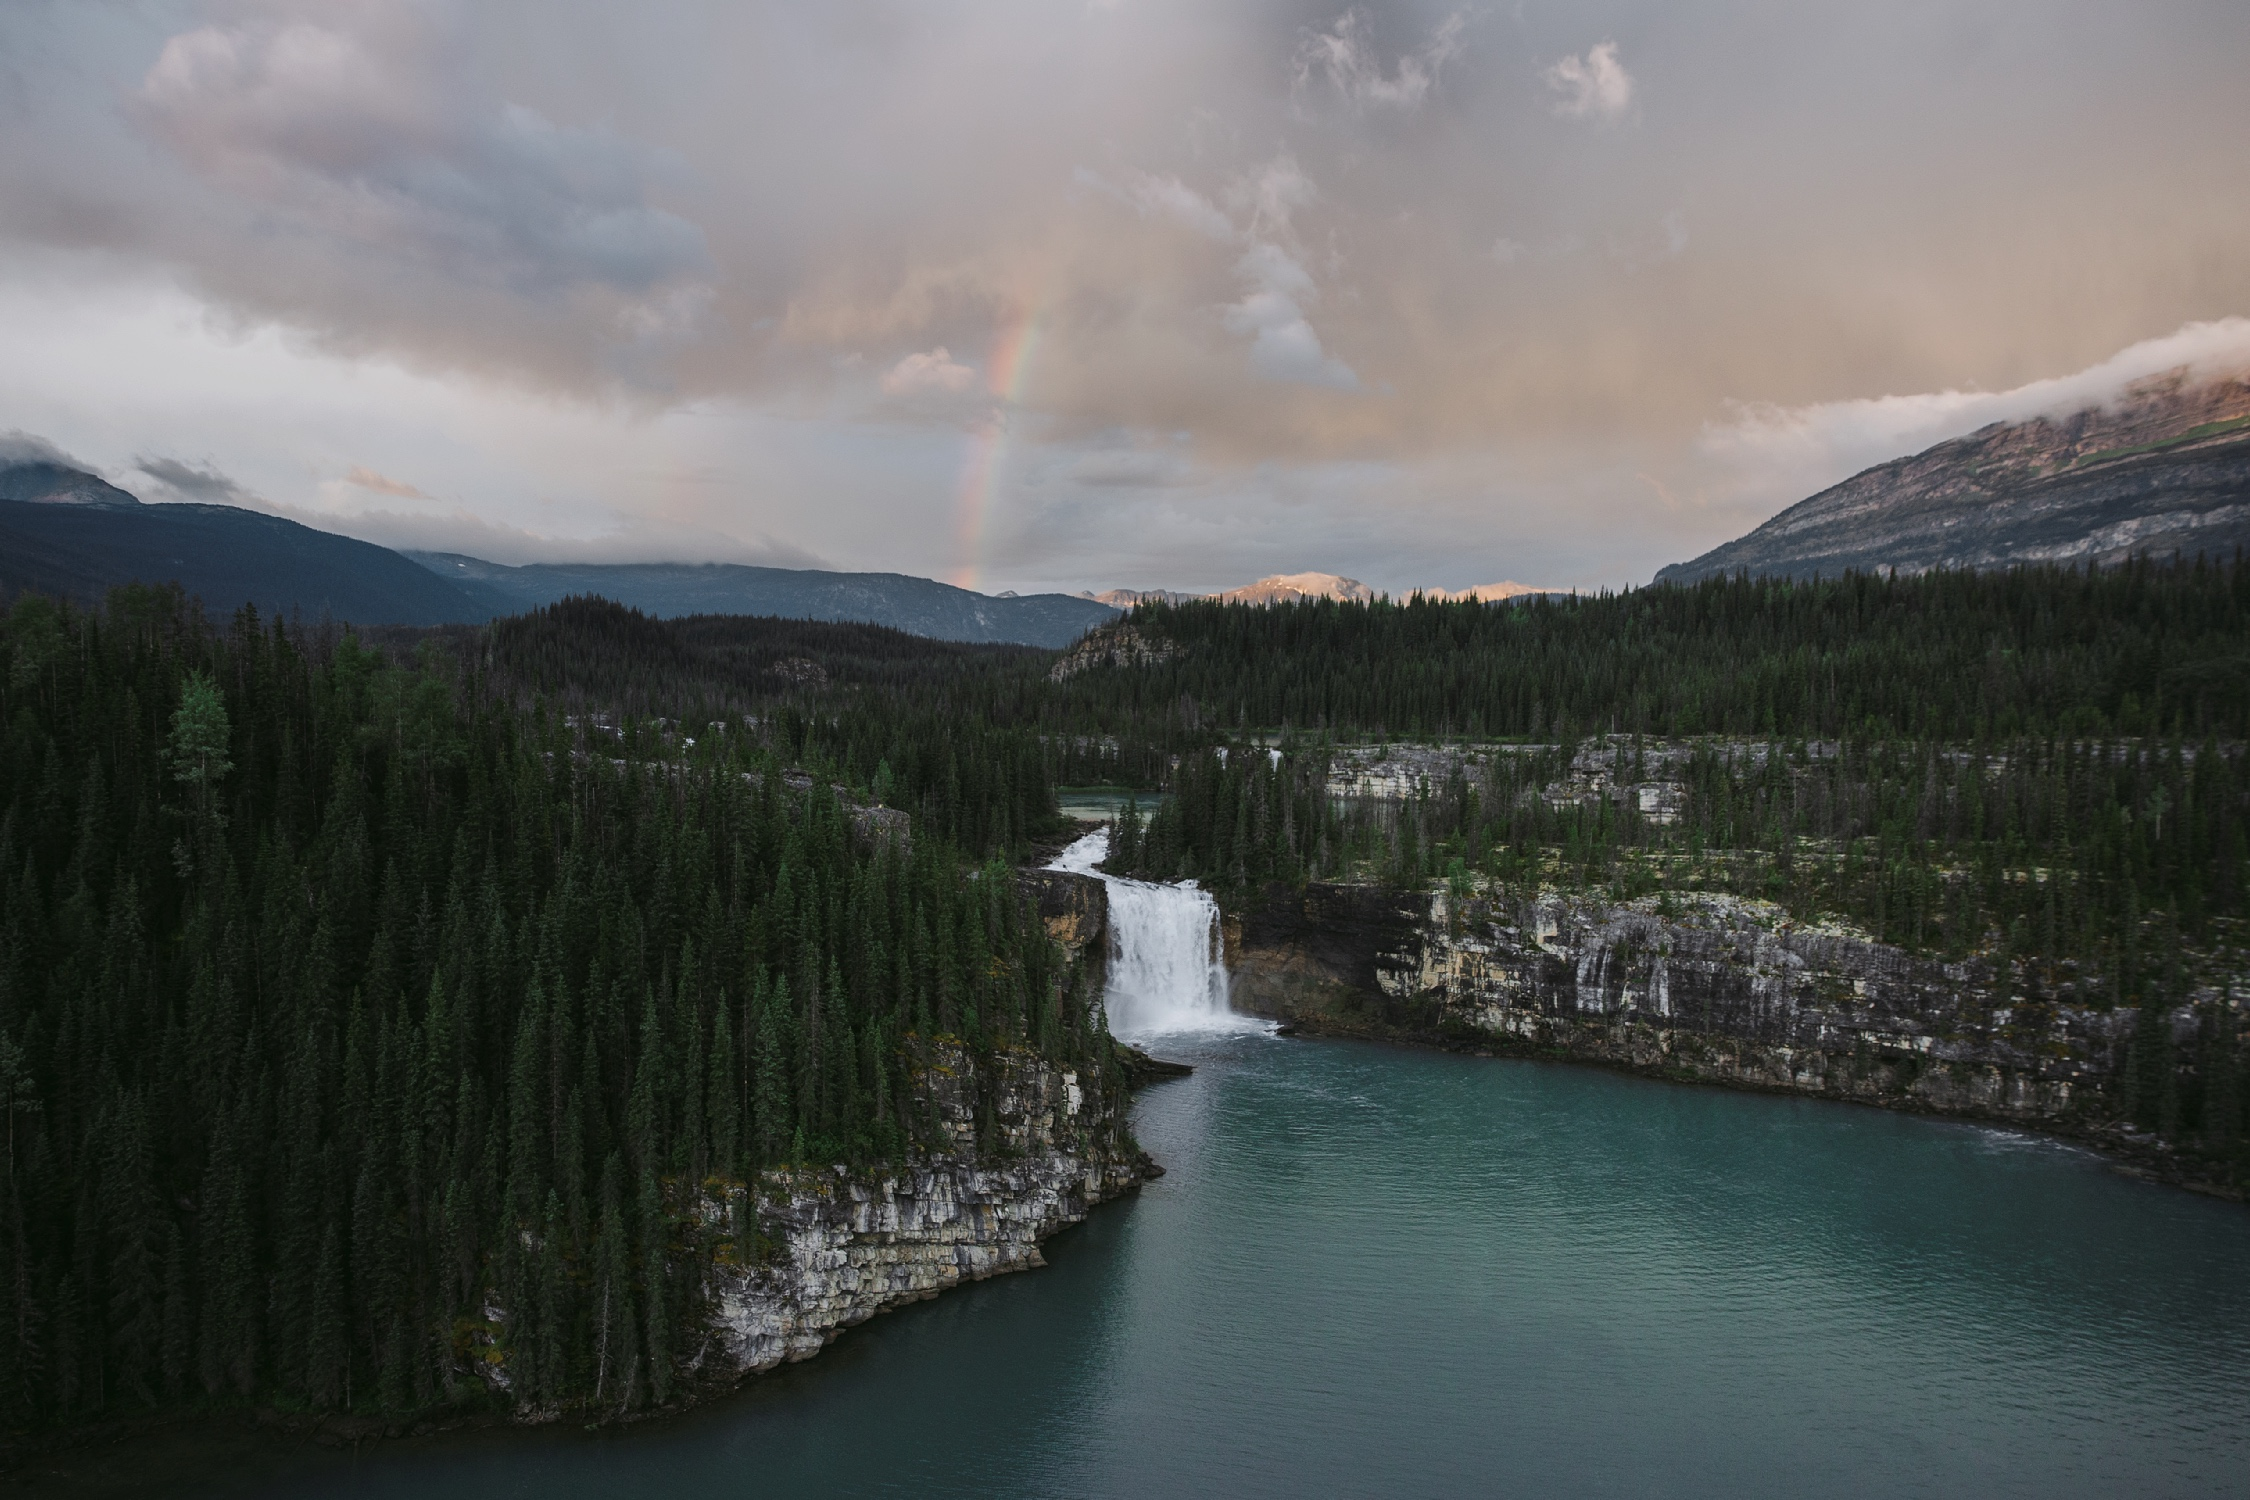 Brooks Falls in the foreground, Shire Falls in the background, Monkman Provincial Park, Tumbler Ridge UNESCO Global Geopark